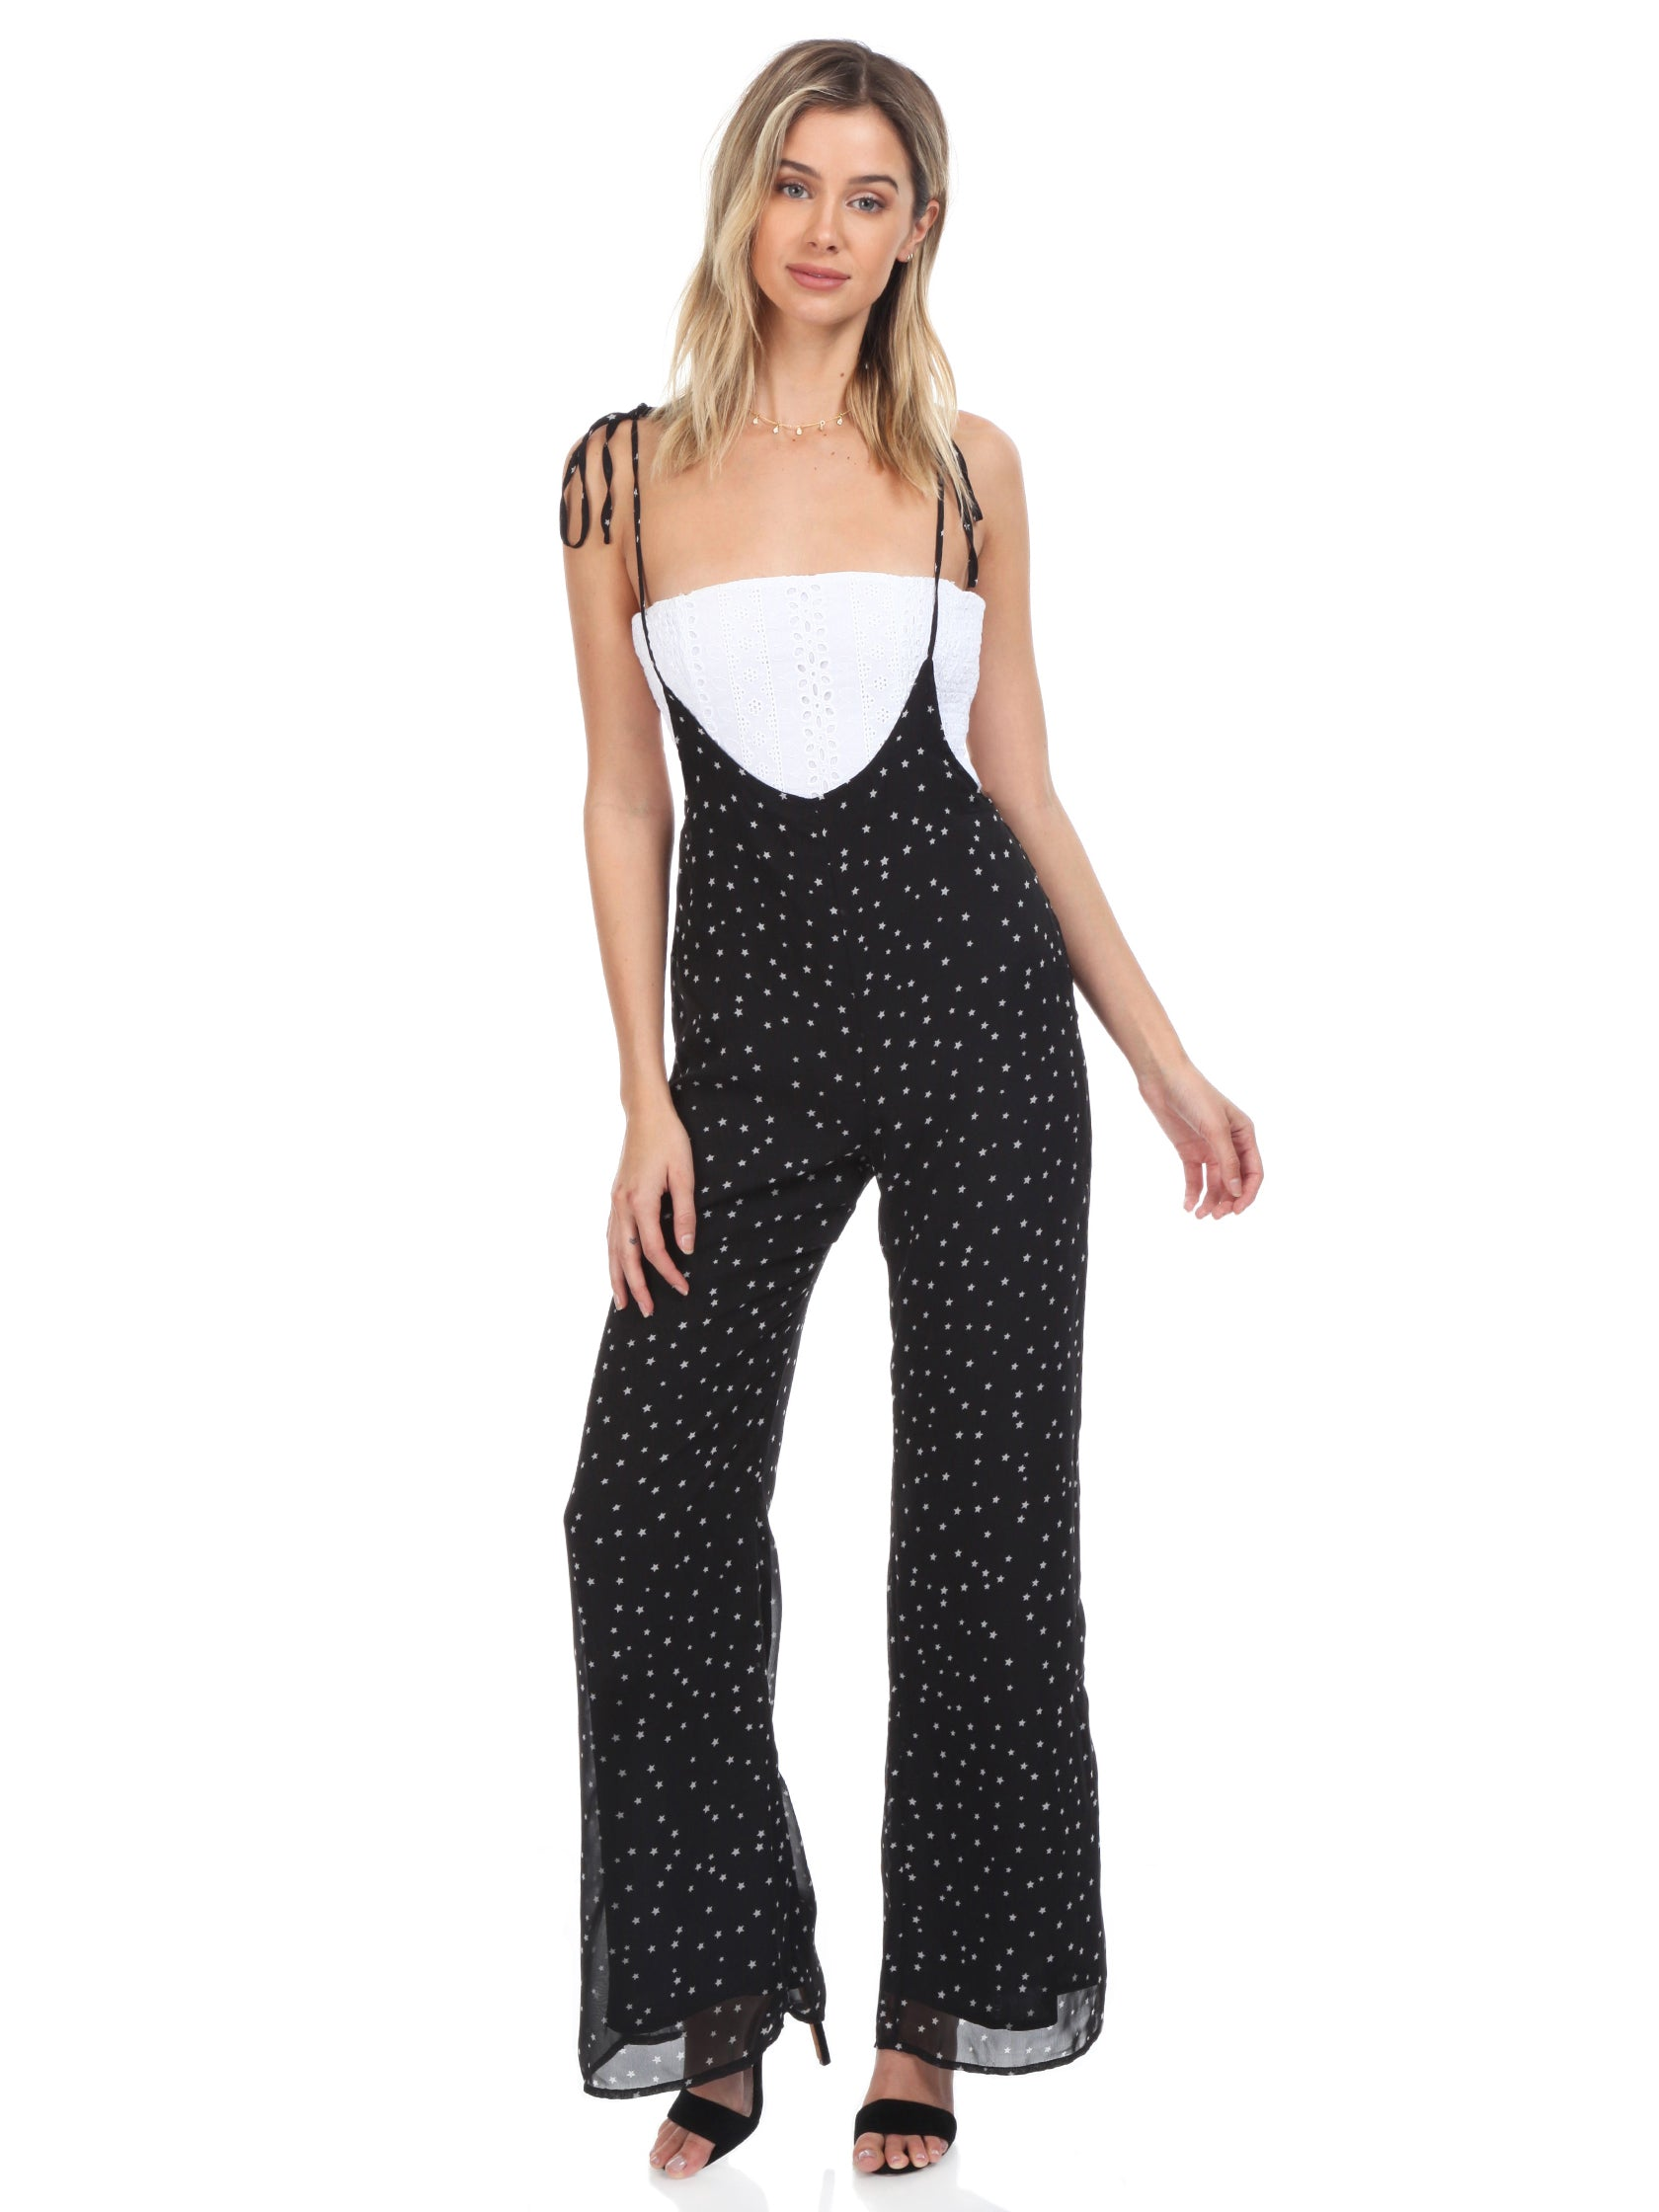 Girl outfit in a jumpsuit rental from FashionPass called Sasha Star Print Jumpsuit